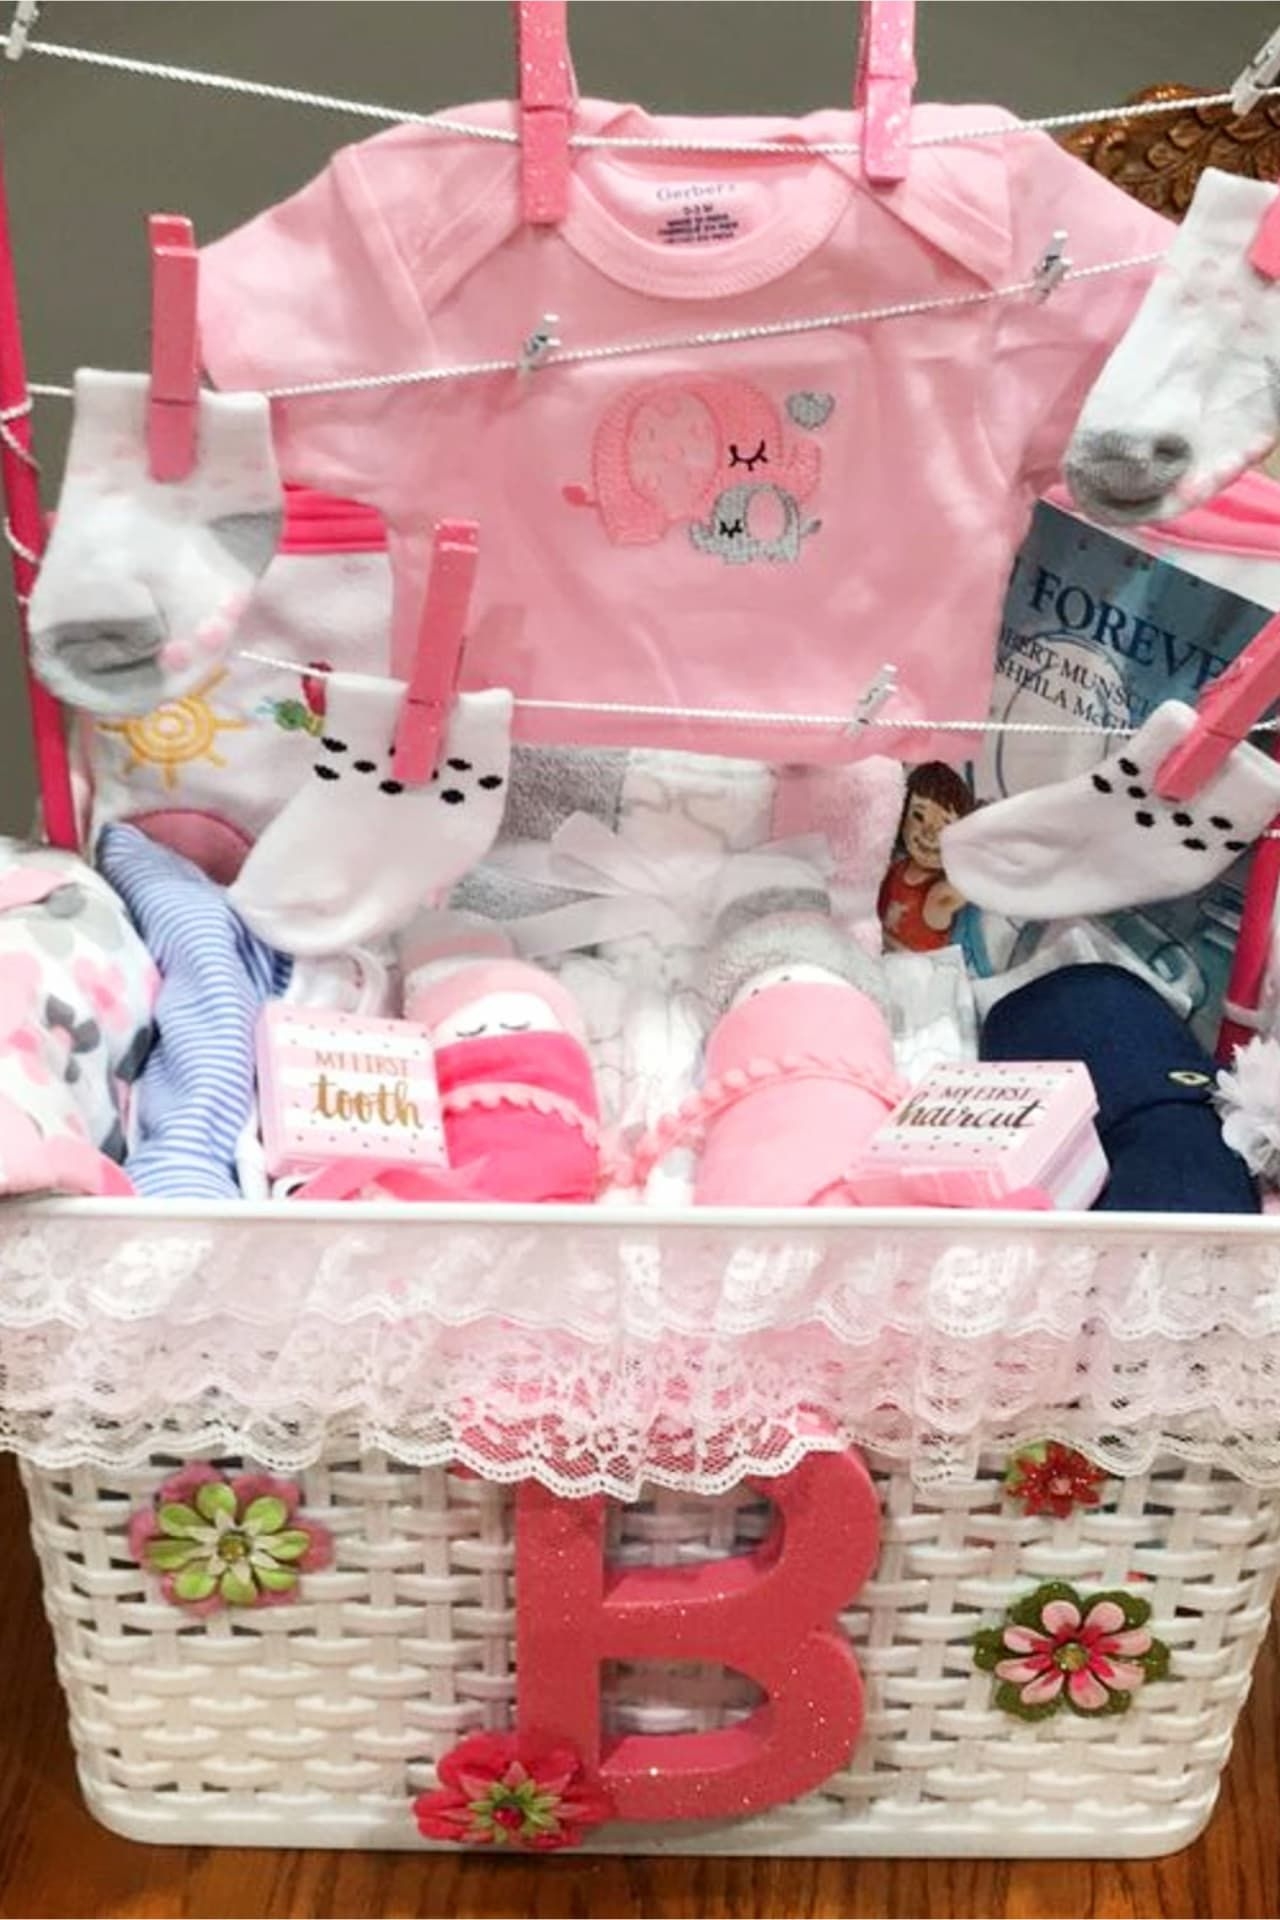 What To Put In A Baby Shower Gift Basket : shower, basket, Shower, Basket, Ideas, Creative, Baskets, You're, Budget, Gifts,, Basket,